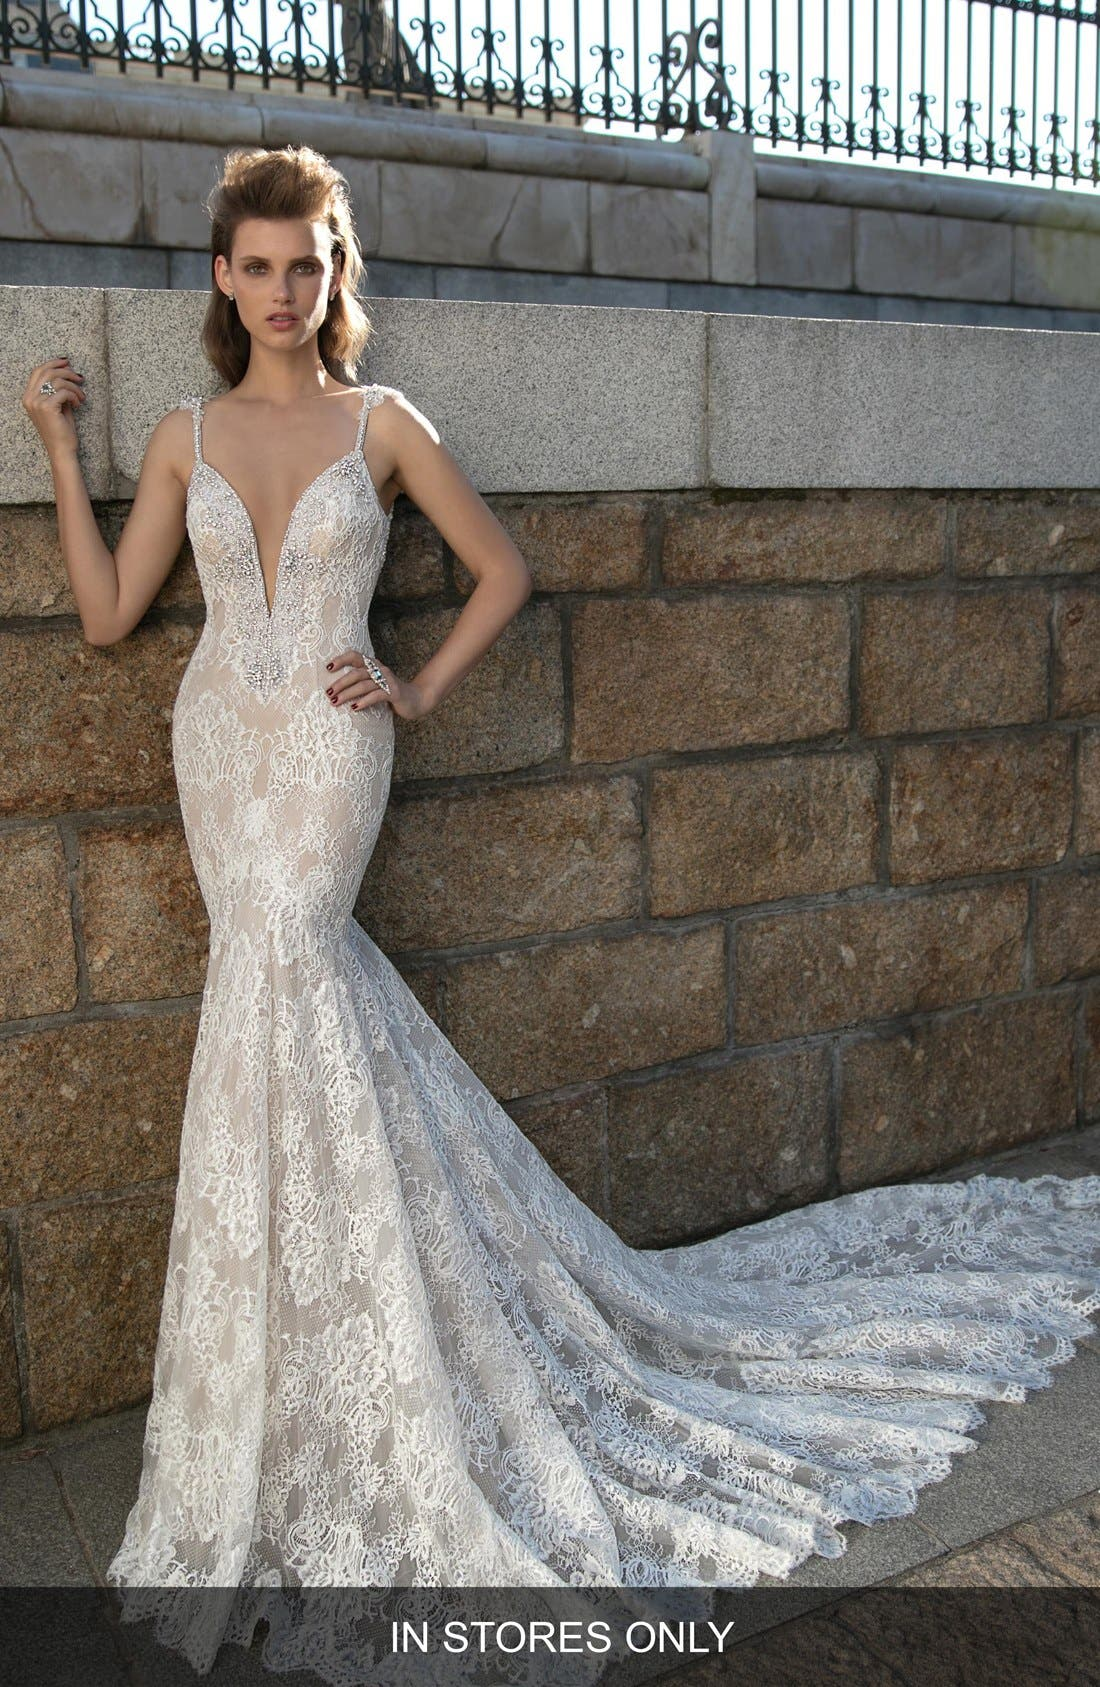 Plunging V-Neck Beaded Lace Dress,                             Main thumbnail 1, color,                             IVORY